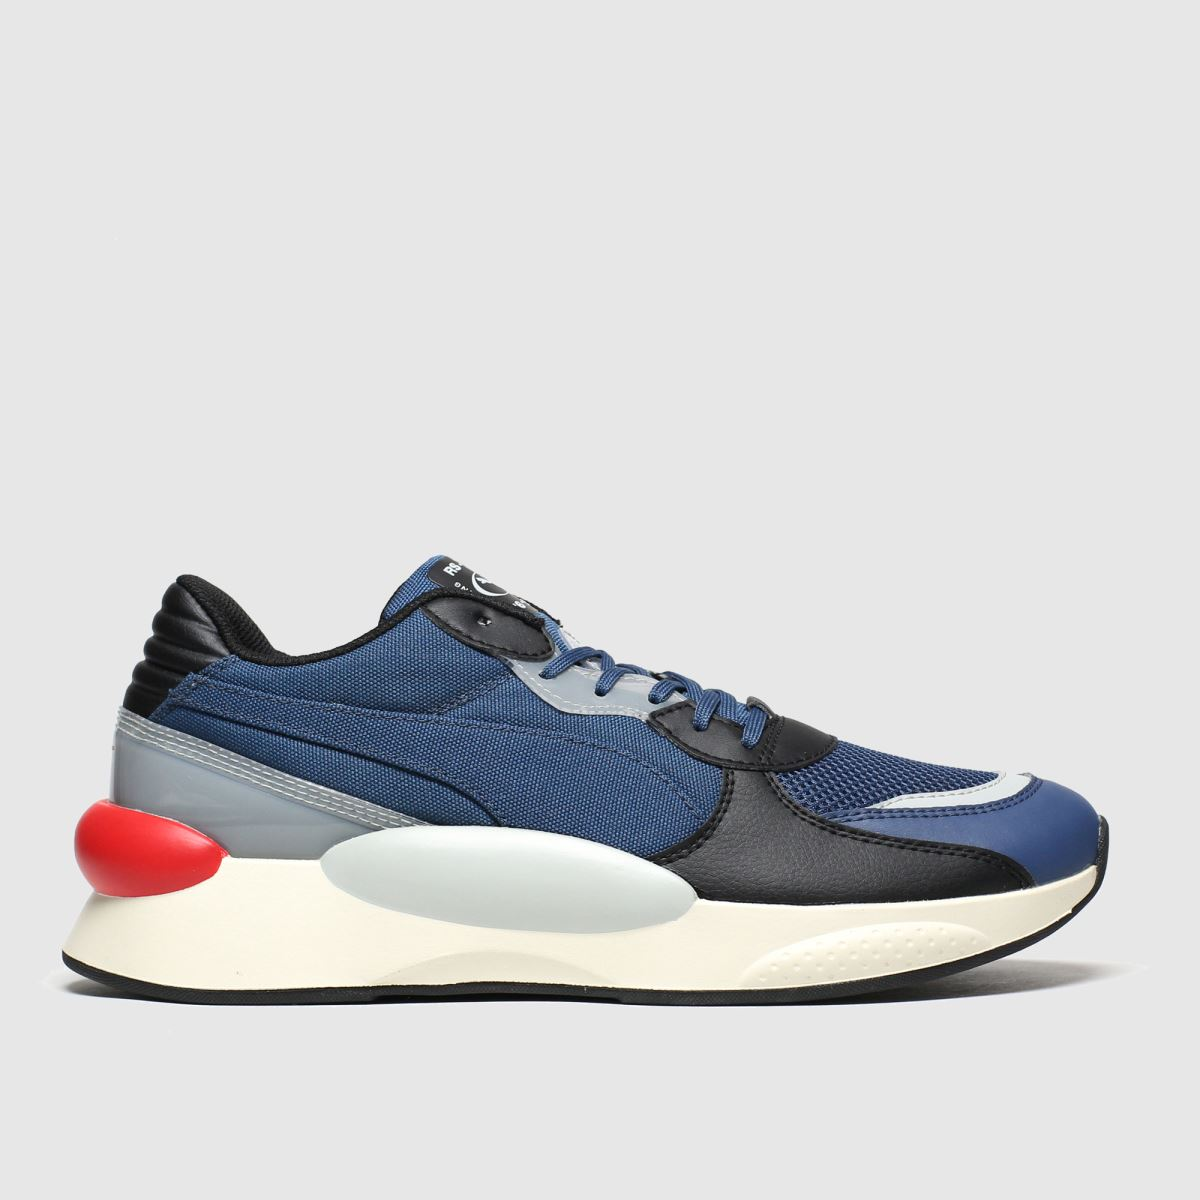 Puma Navy & Red Rs 9.8 Fresh Trainers